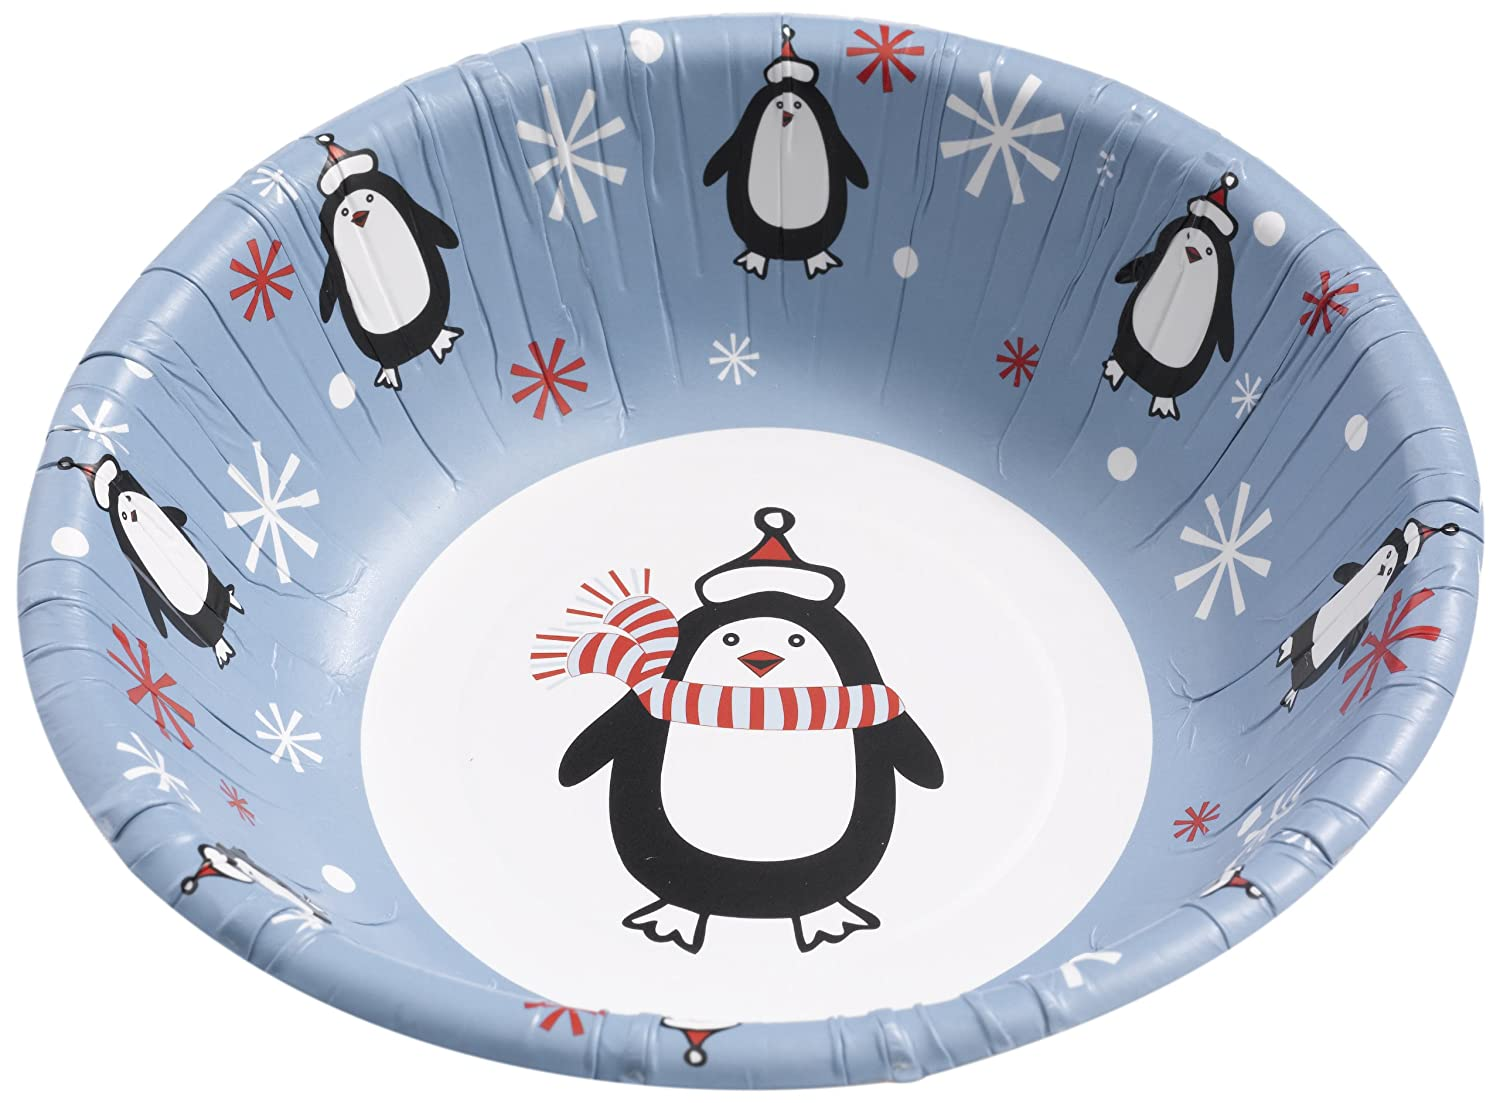 Neviti Party Penguin Paper Bowl, Pack of 8, White/Blue CSC Imports 598540